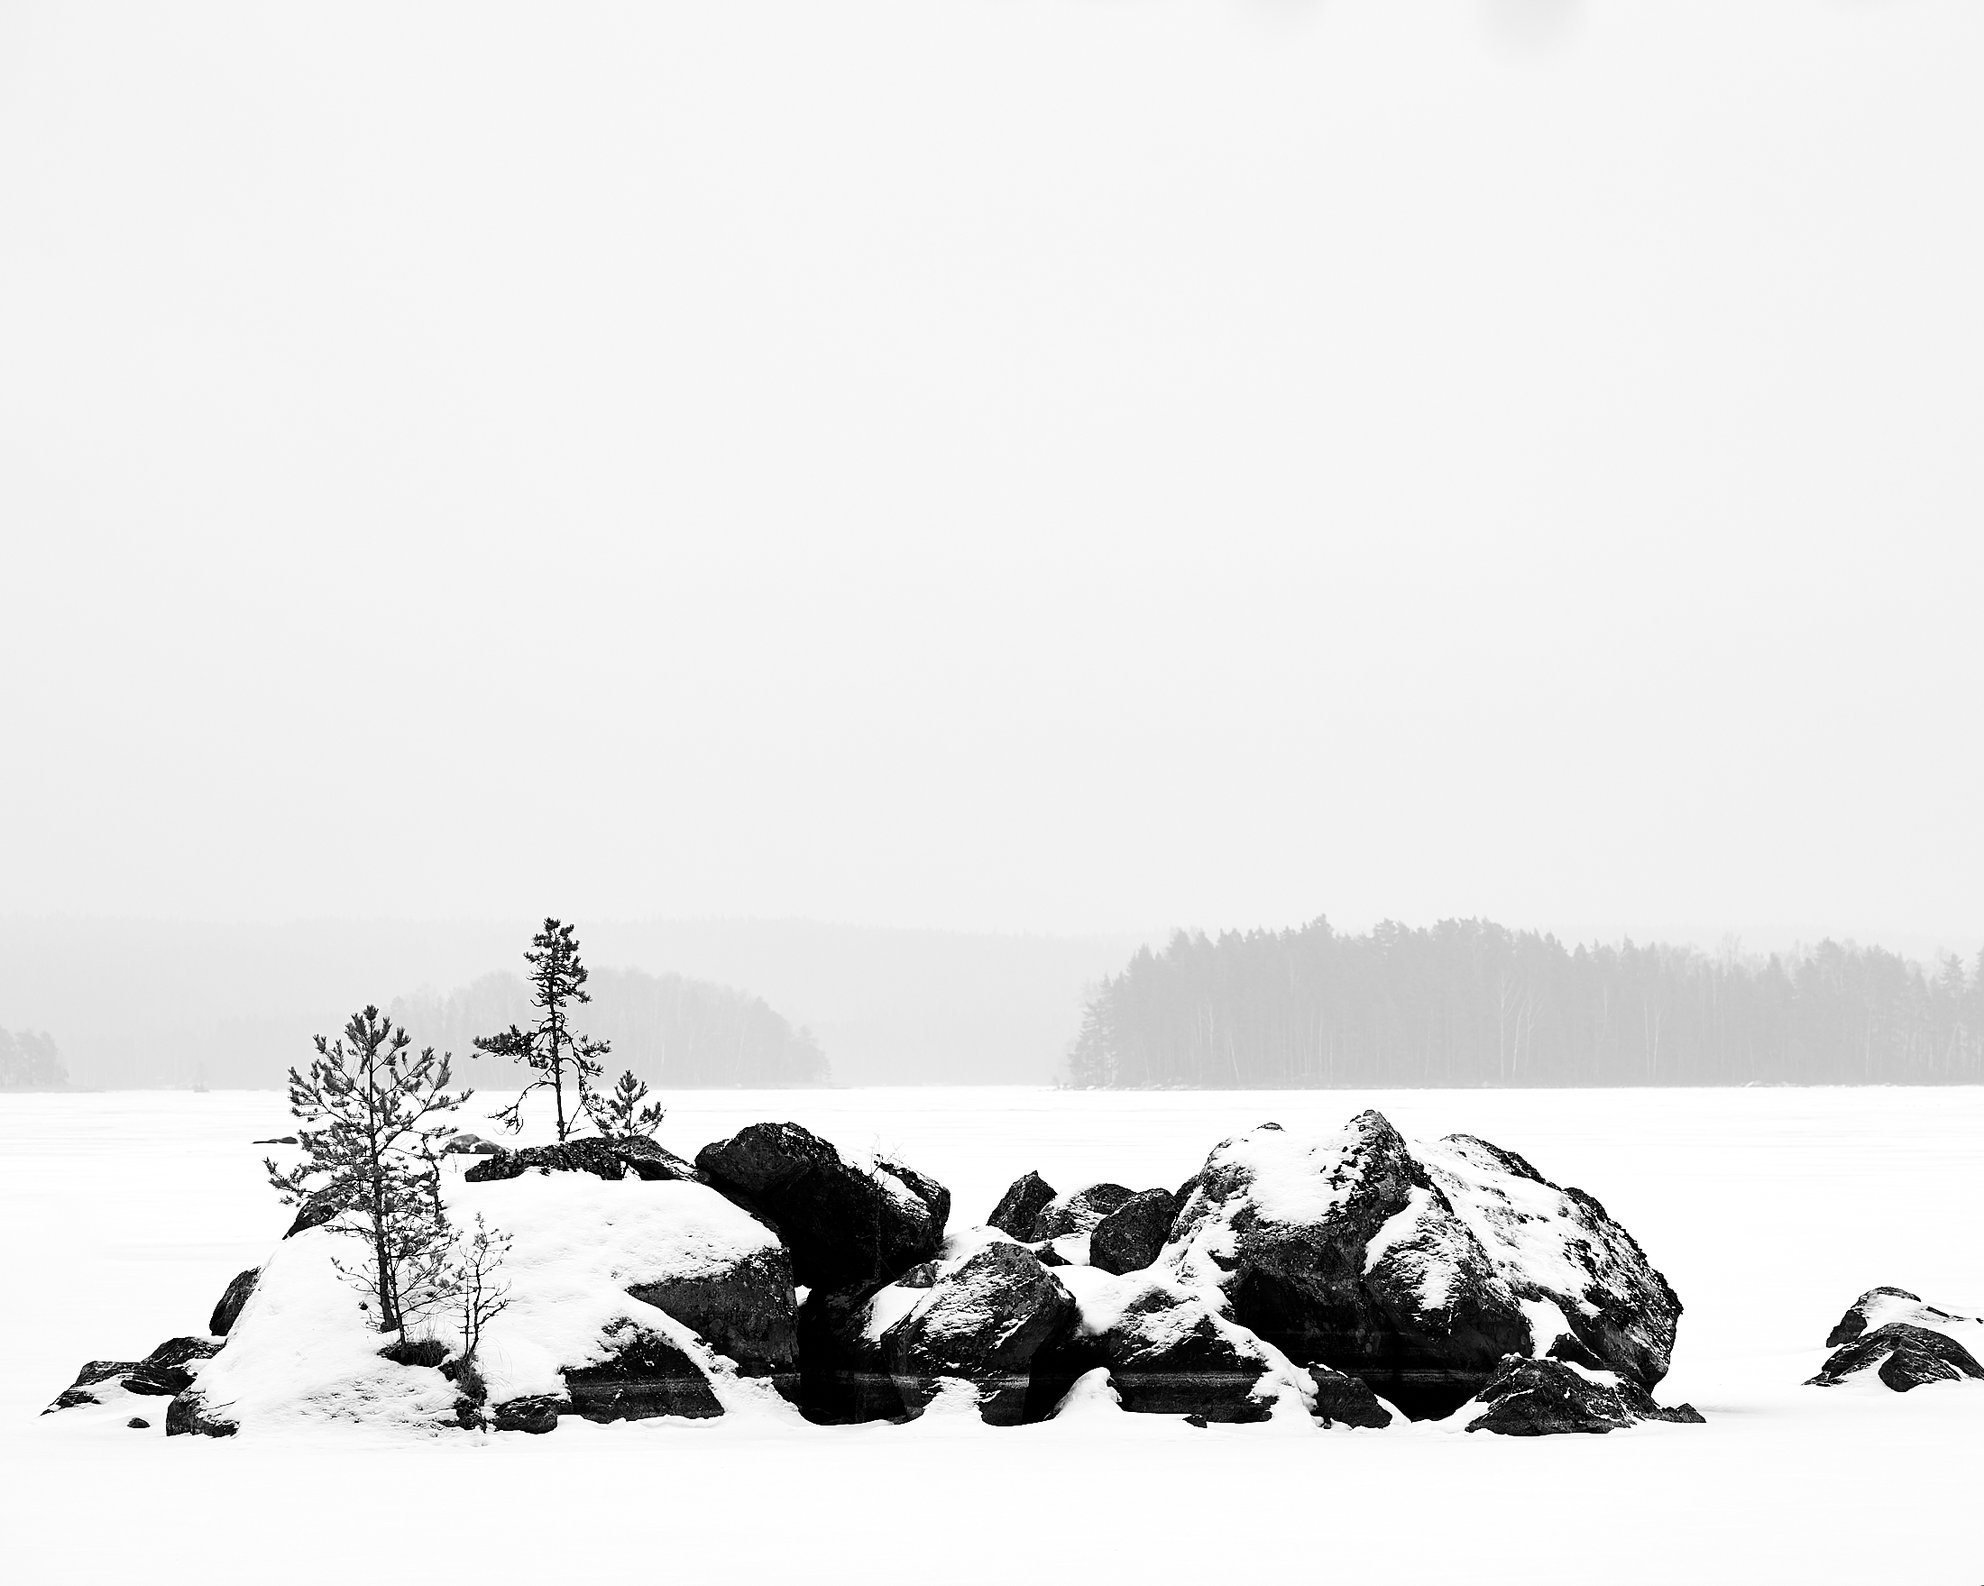 Rocks and Small Pine in Winter